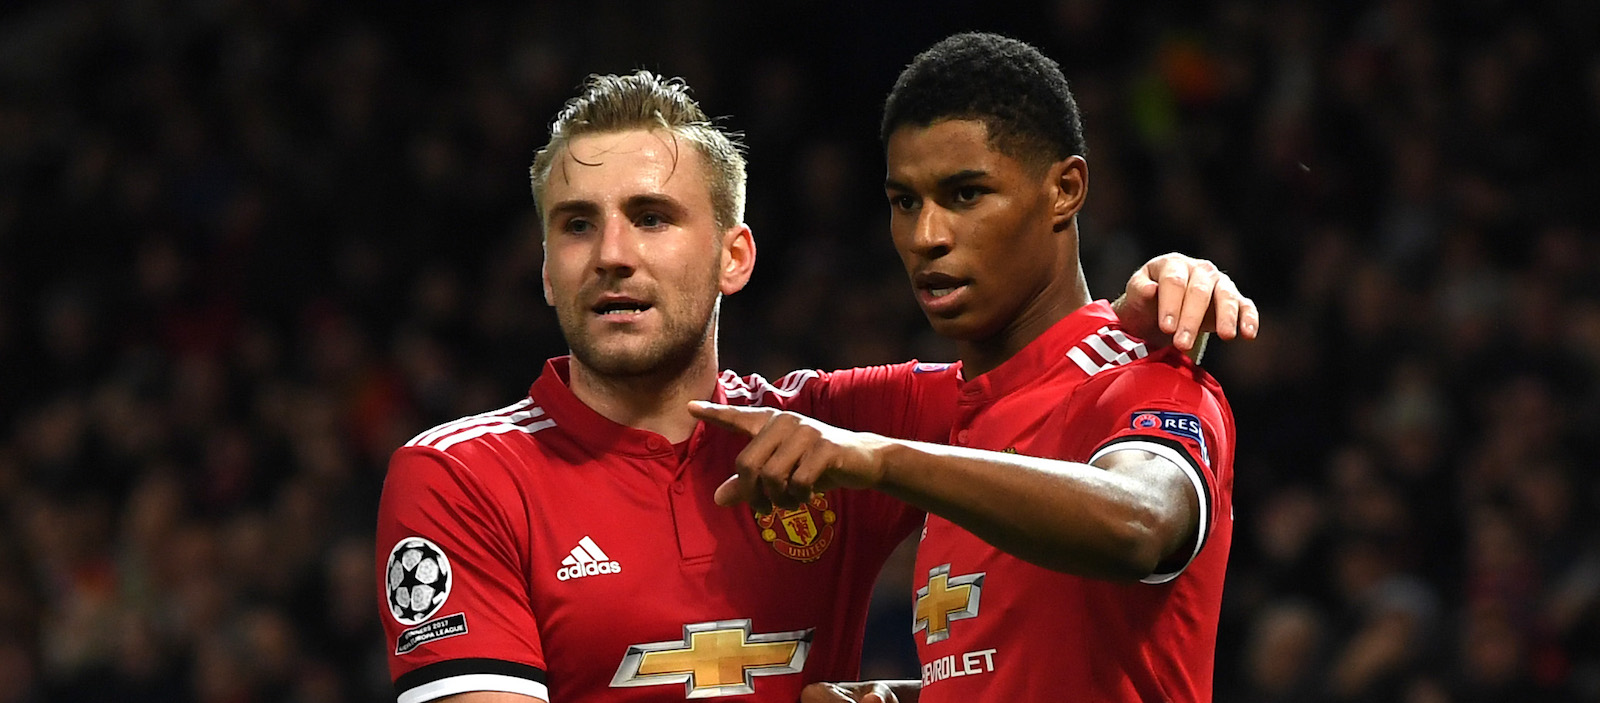 Luke Shaw insists he's feeling the best he's ever felt at Manchester United